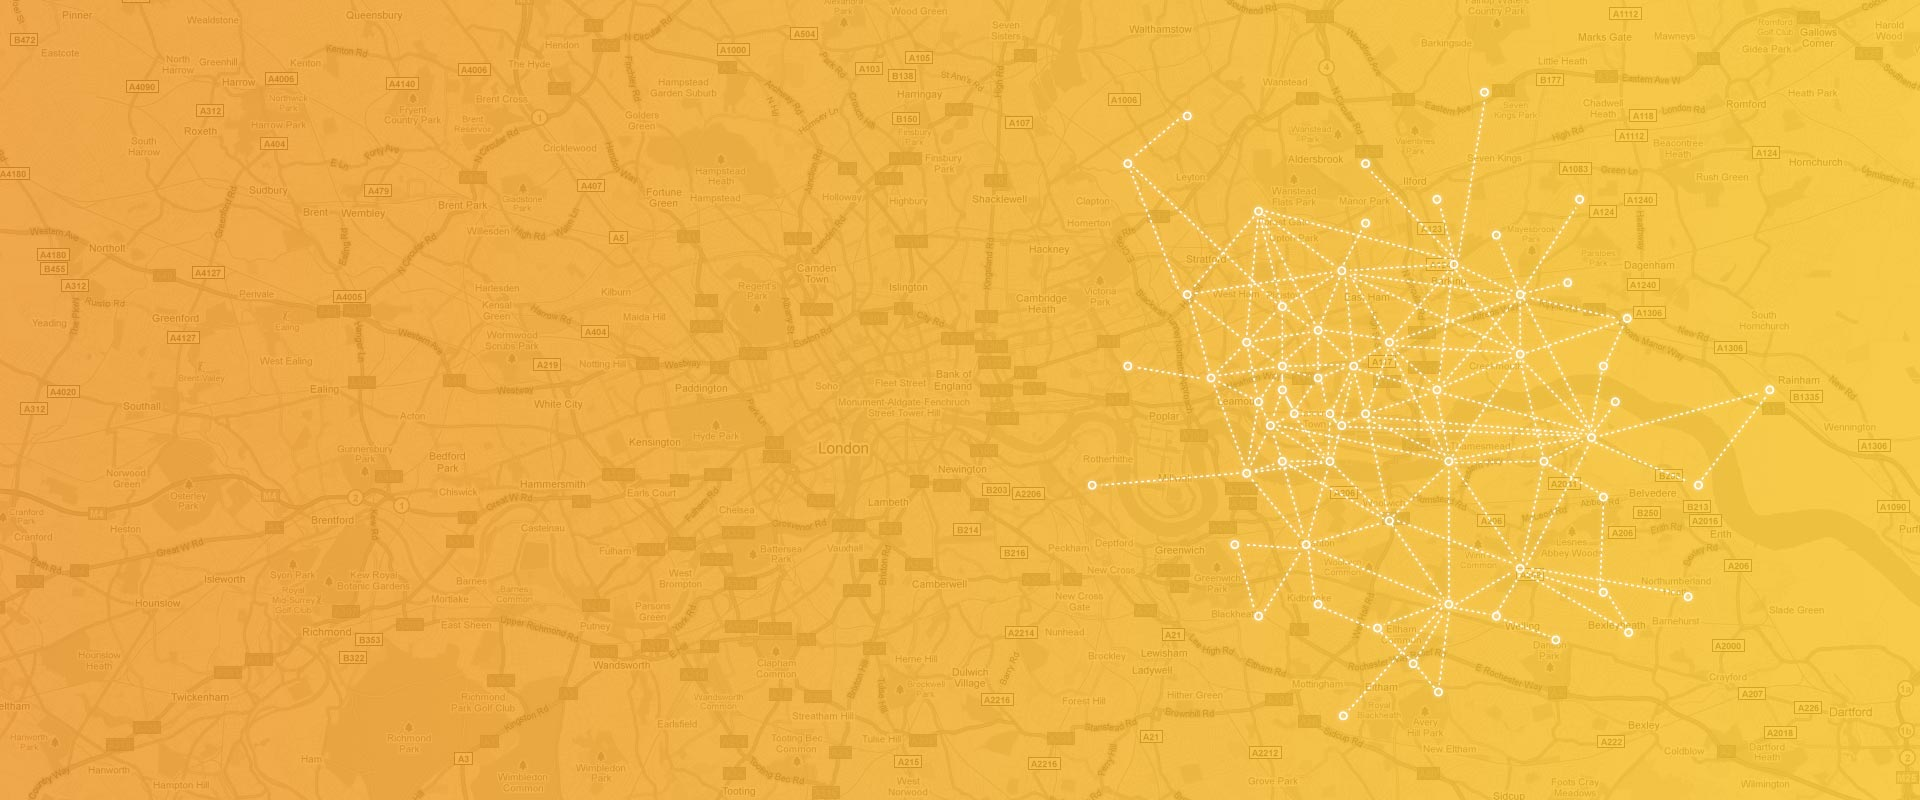 Connected dots over a map | Fon